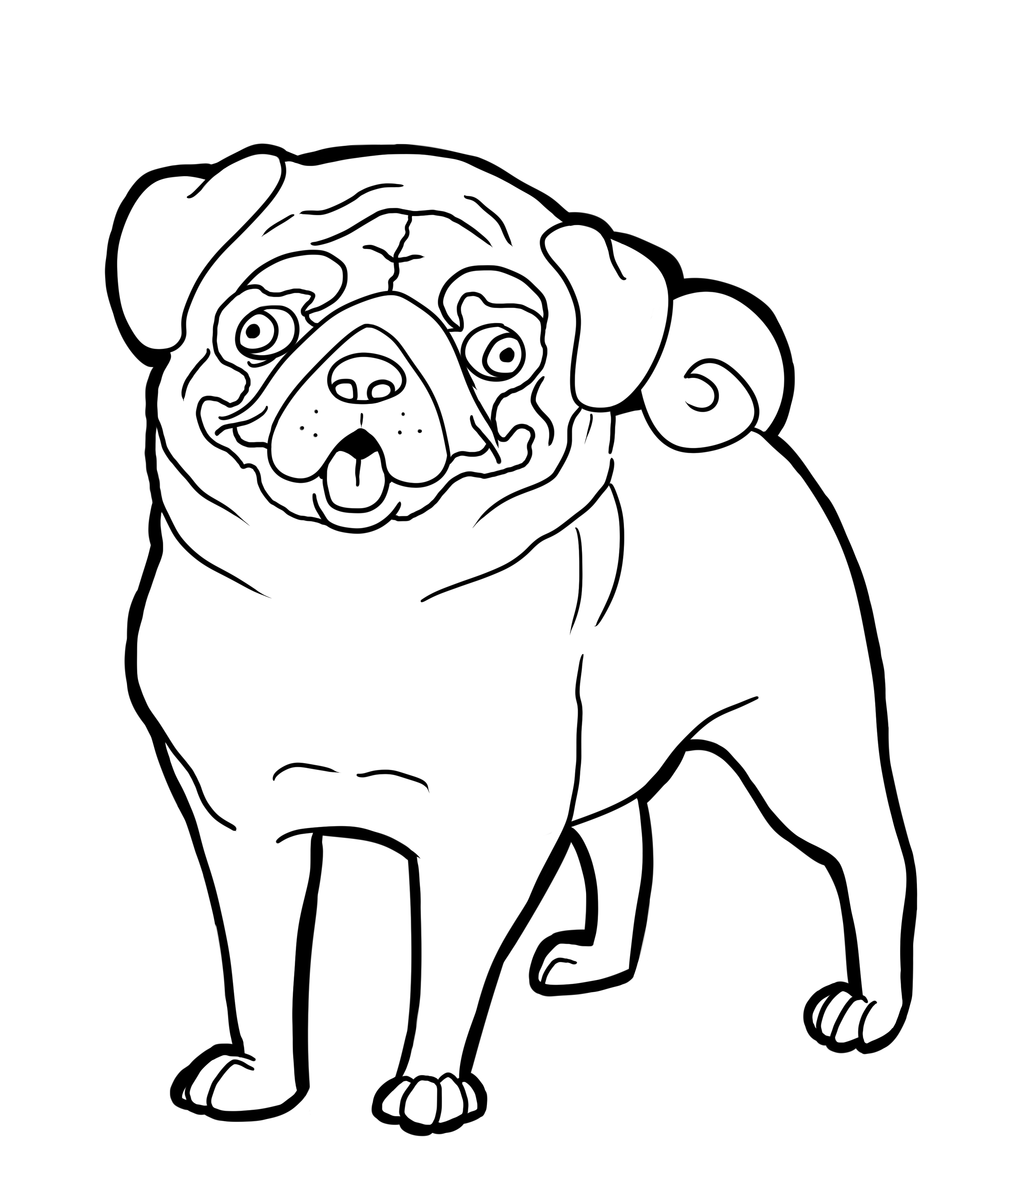 Pug coloring pages best coloring pages for kids for Coloring book pages free